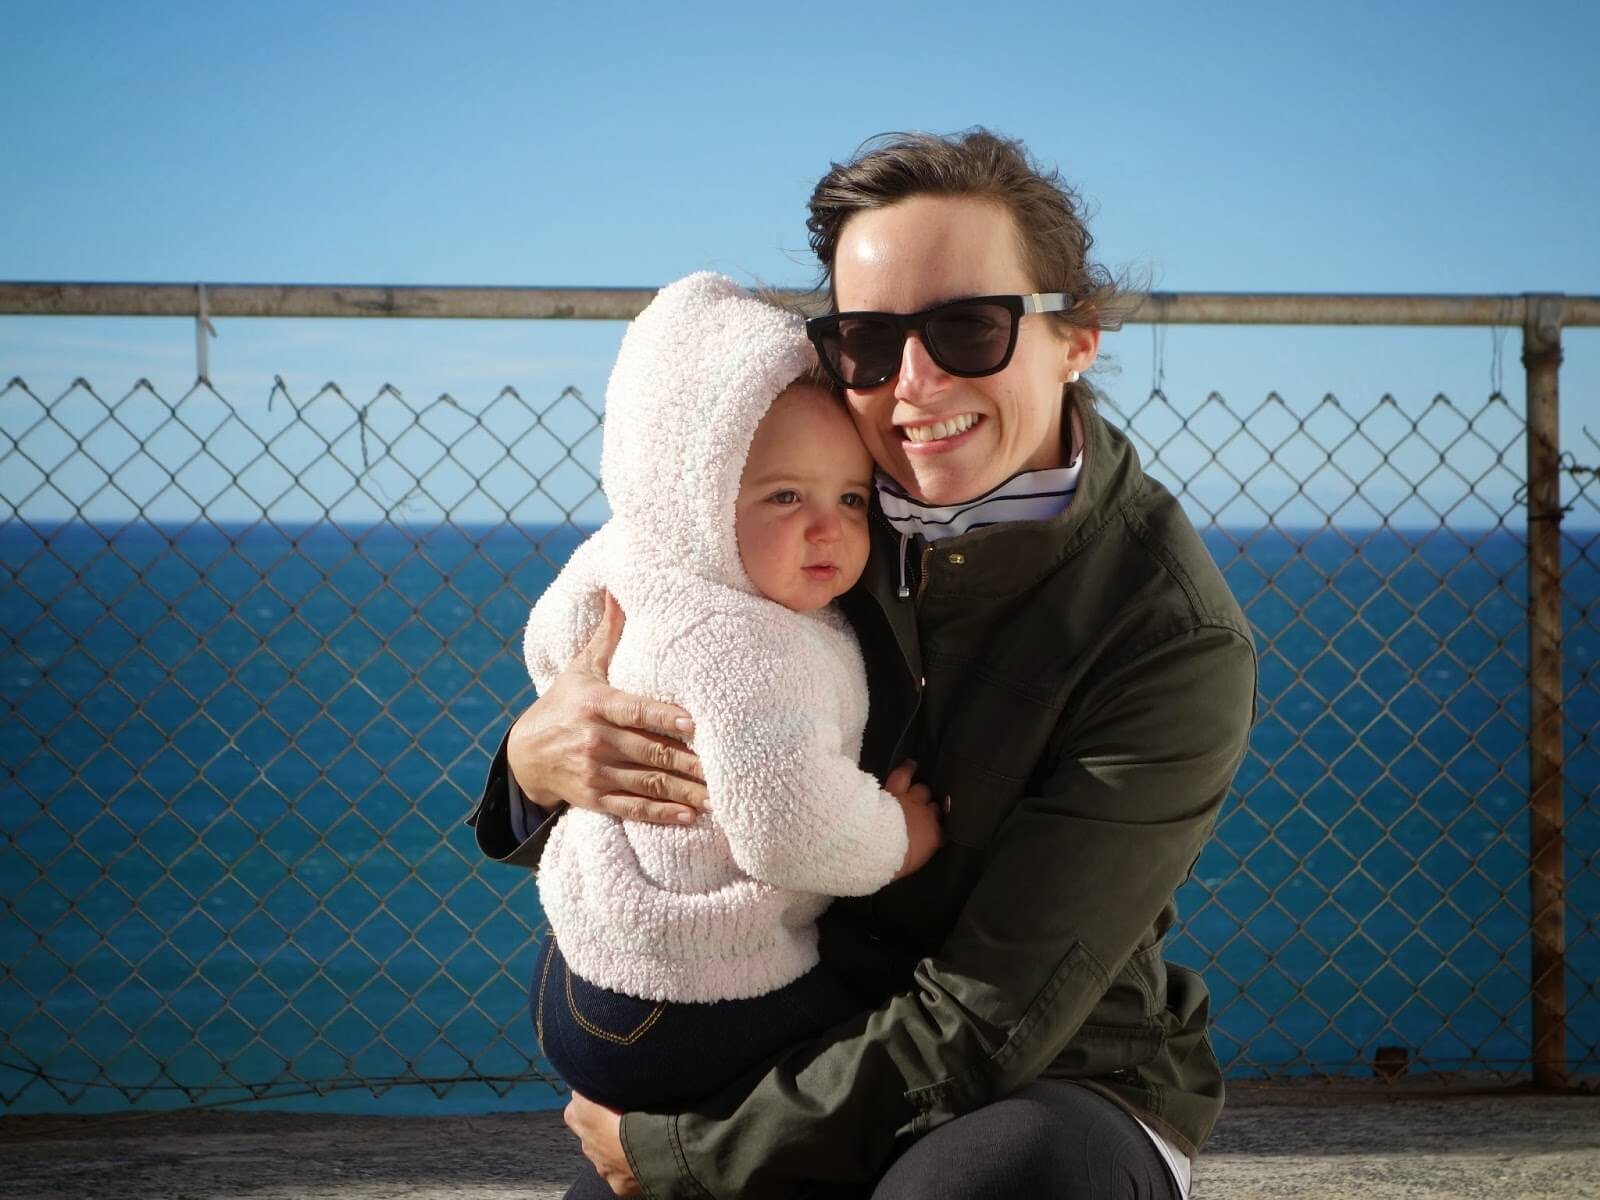 What's it really like to raise kids in New Zealand